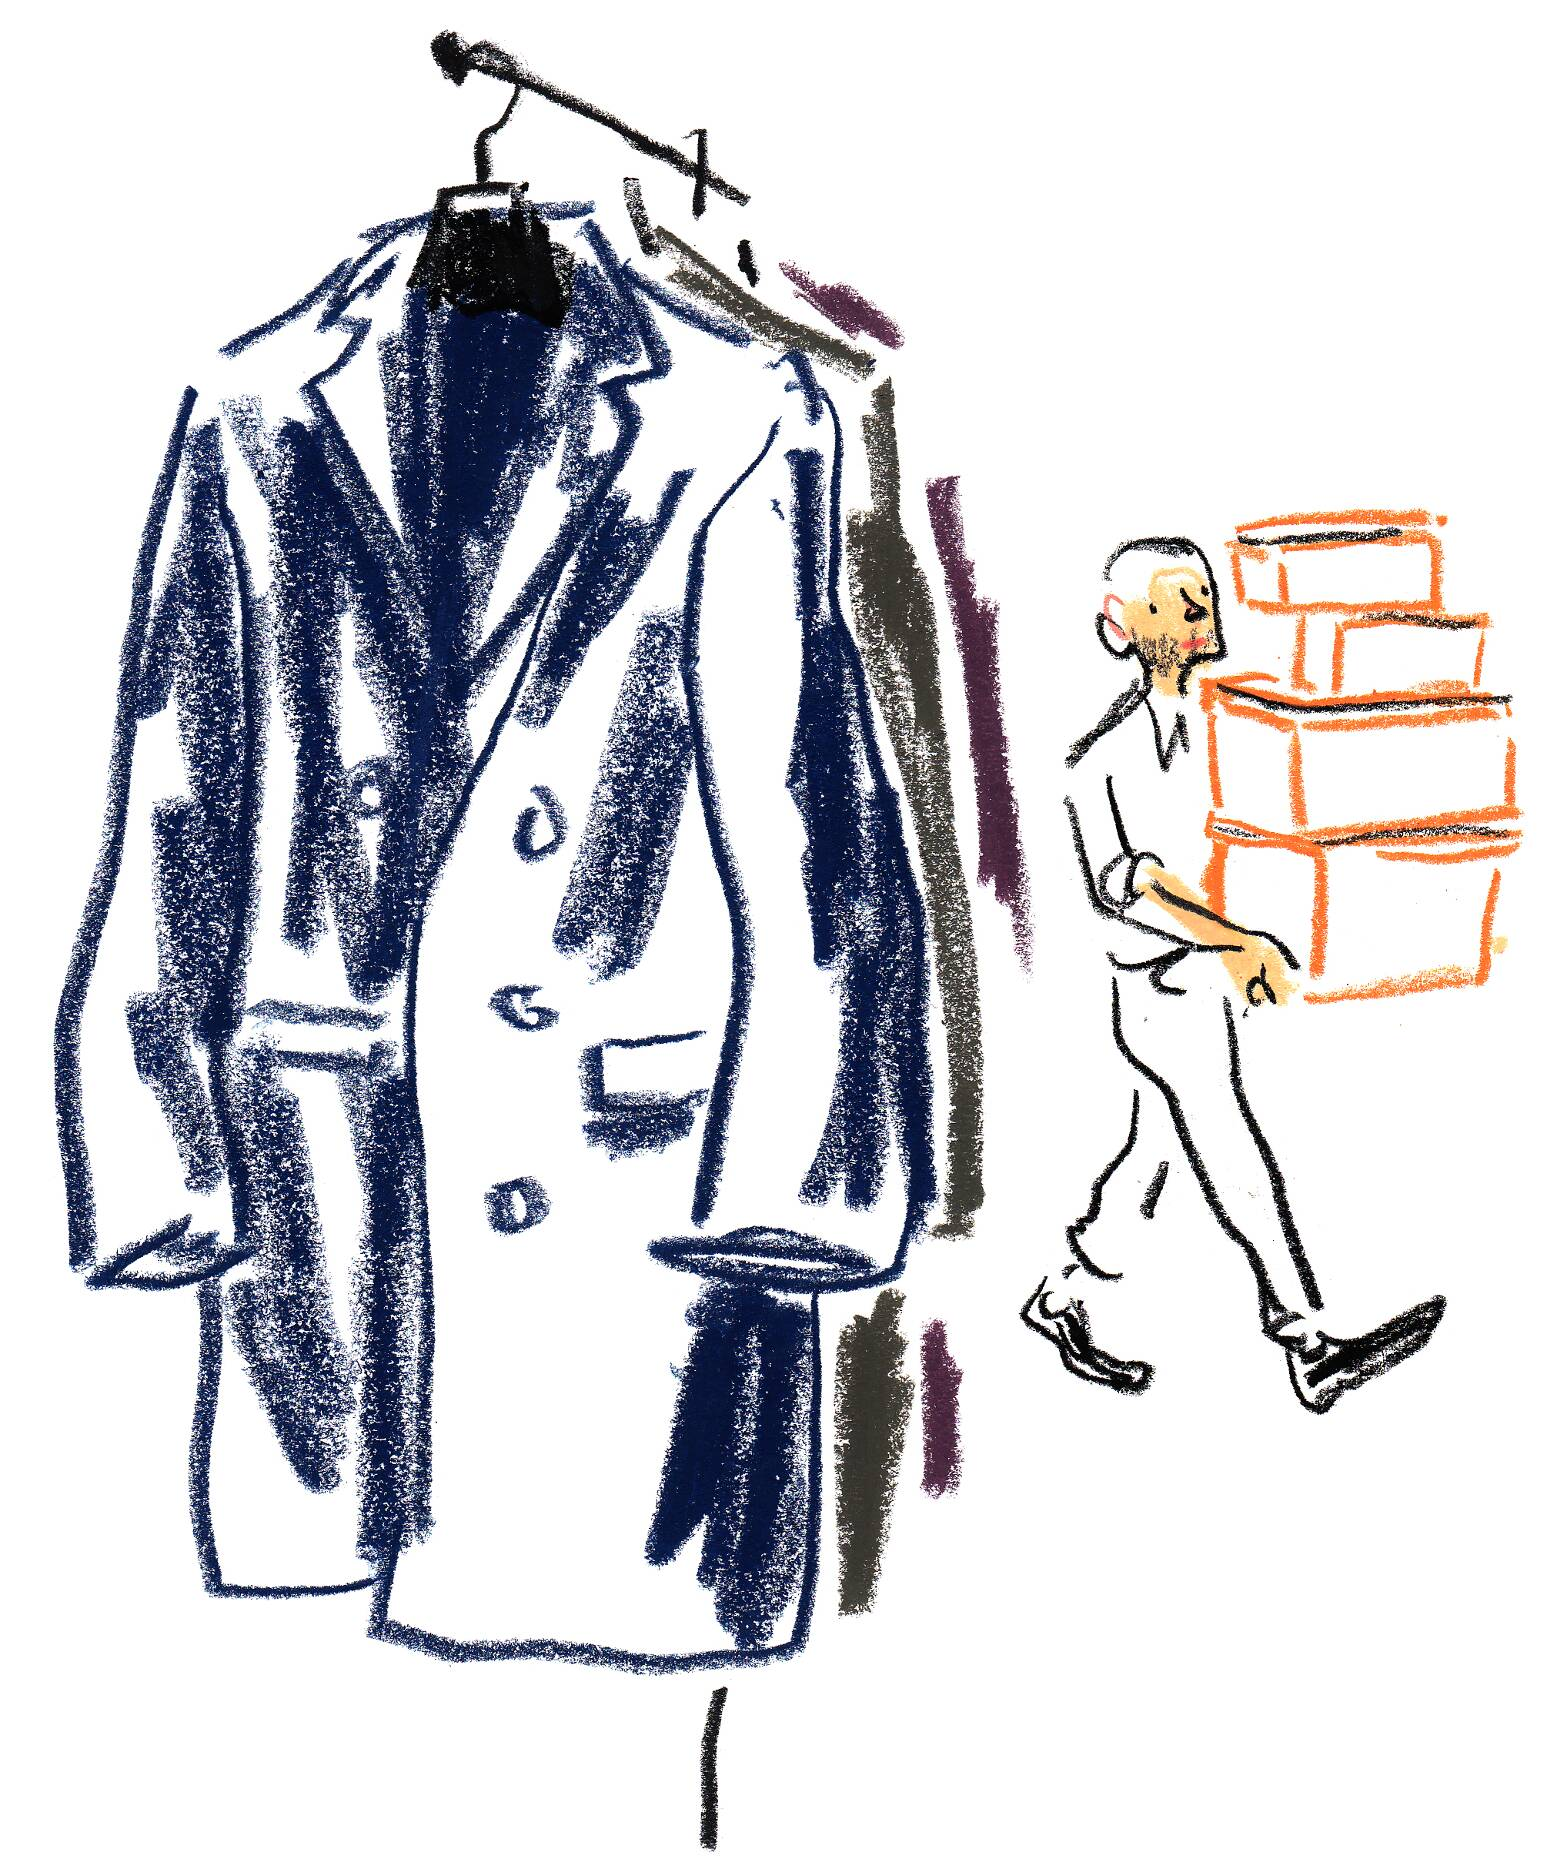 Hermès Fall Winter 2015-16 Men's Illustration